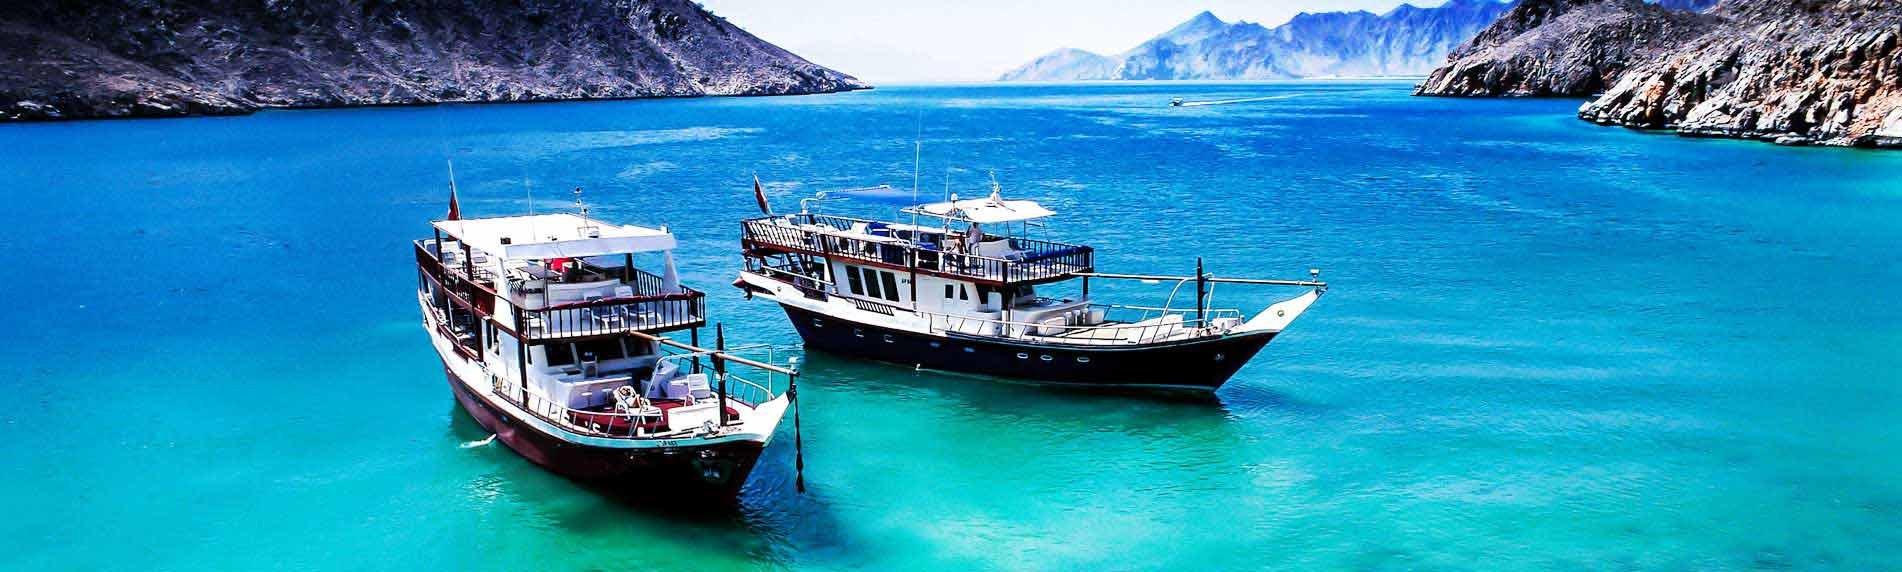 Oman Musandam Tour / Dibba Musandam Sea Safari - Tour